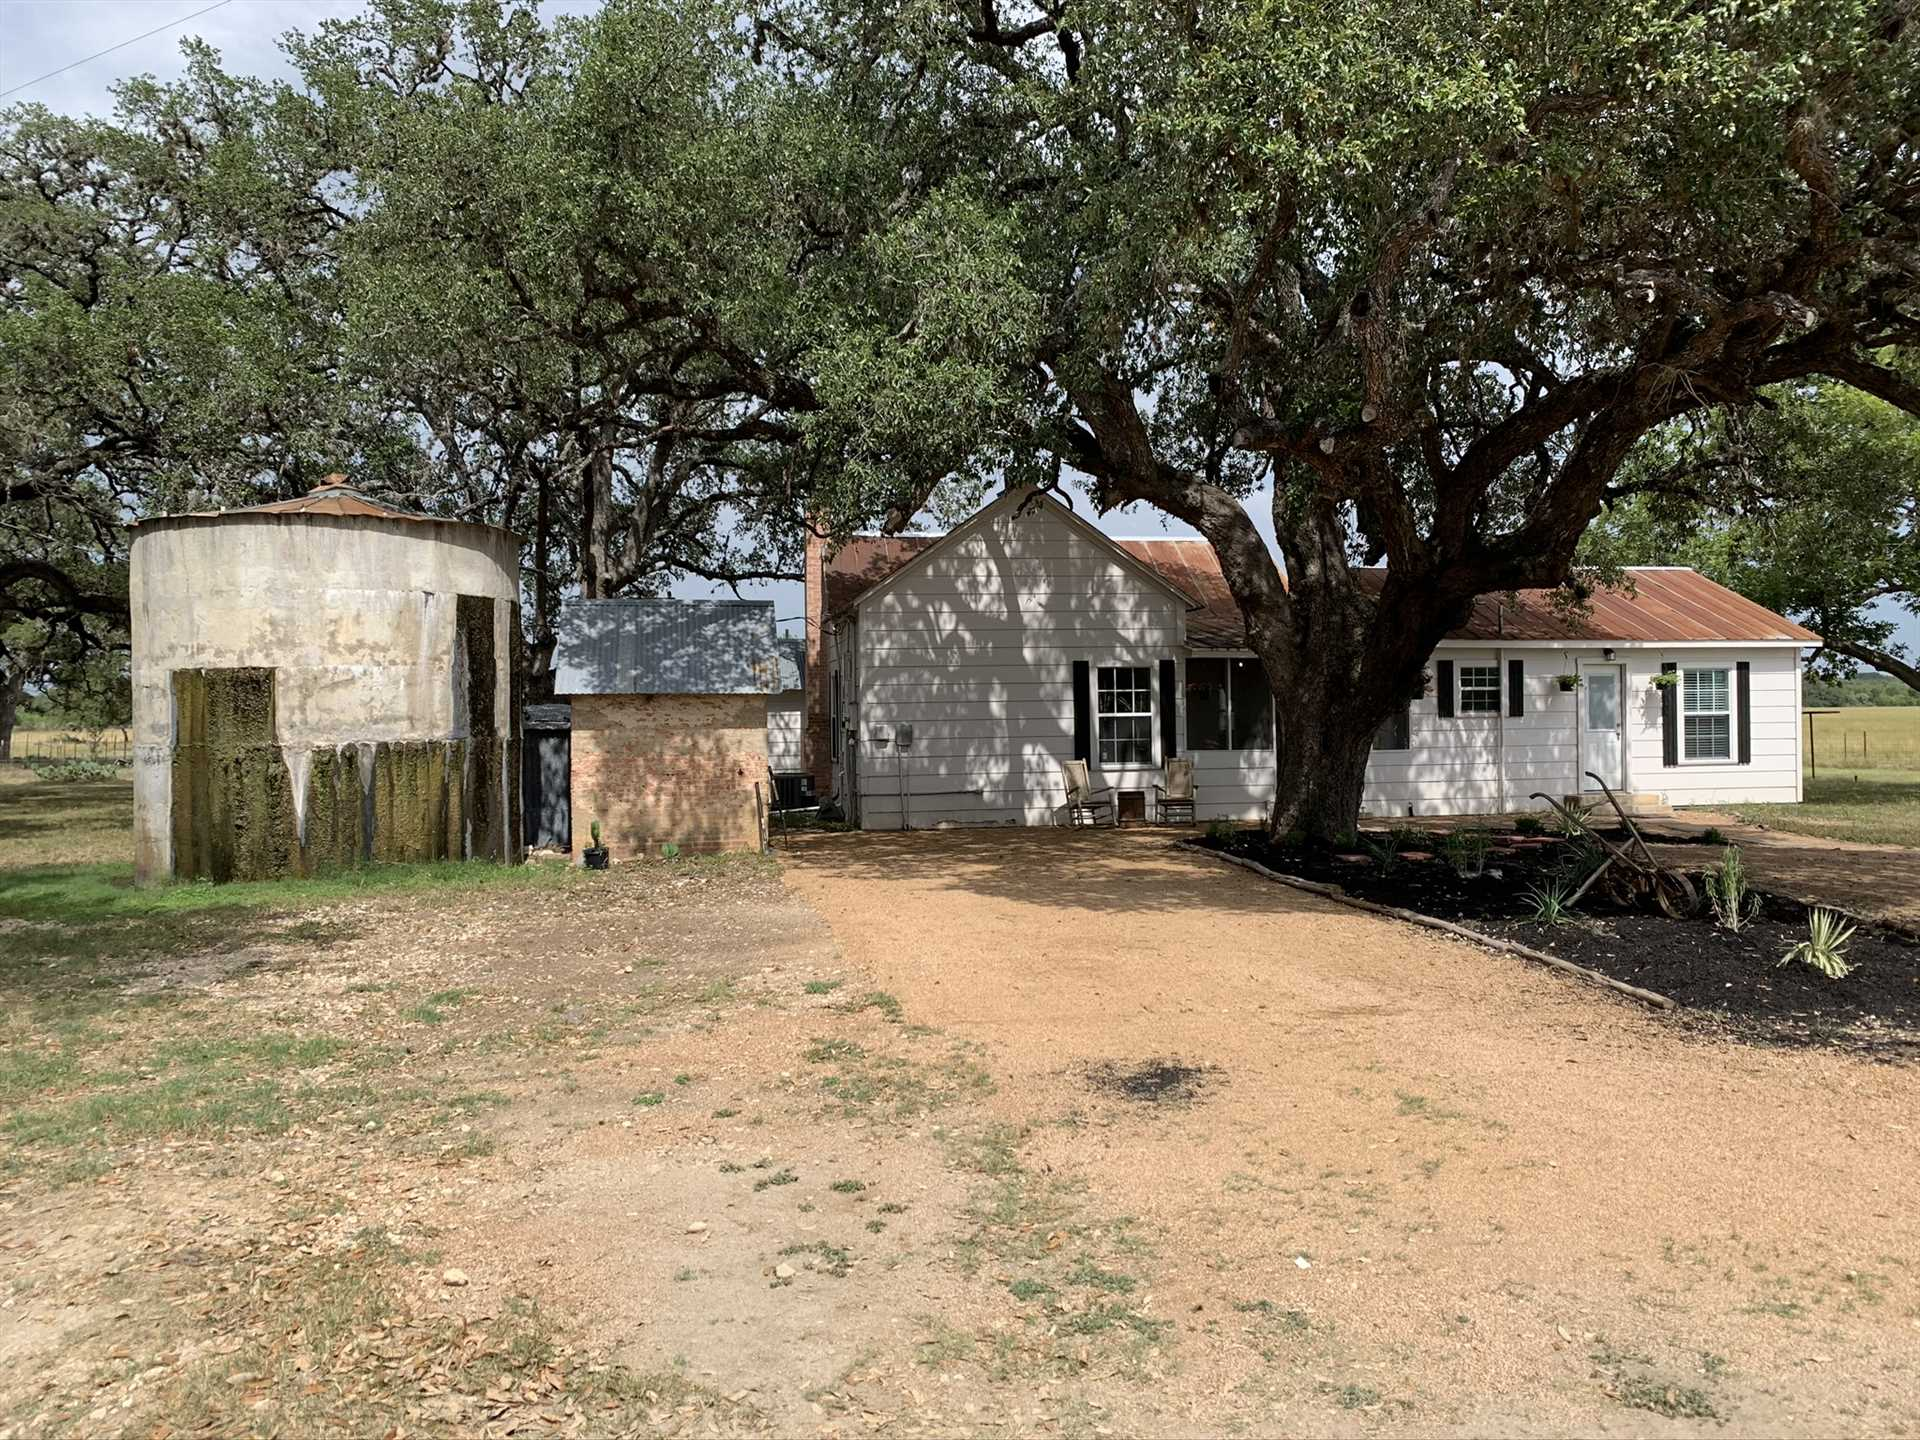 The grounds at the Retreat also include a charcoal grill for a traditional down-home Texas BBQ.